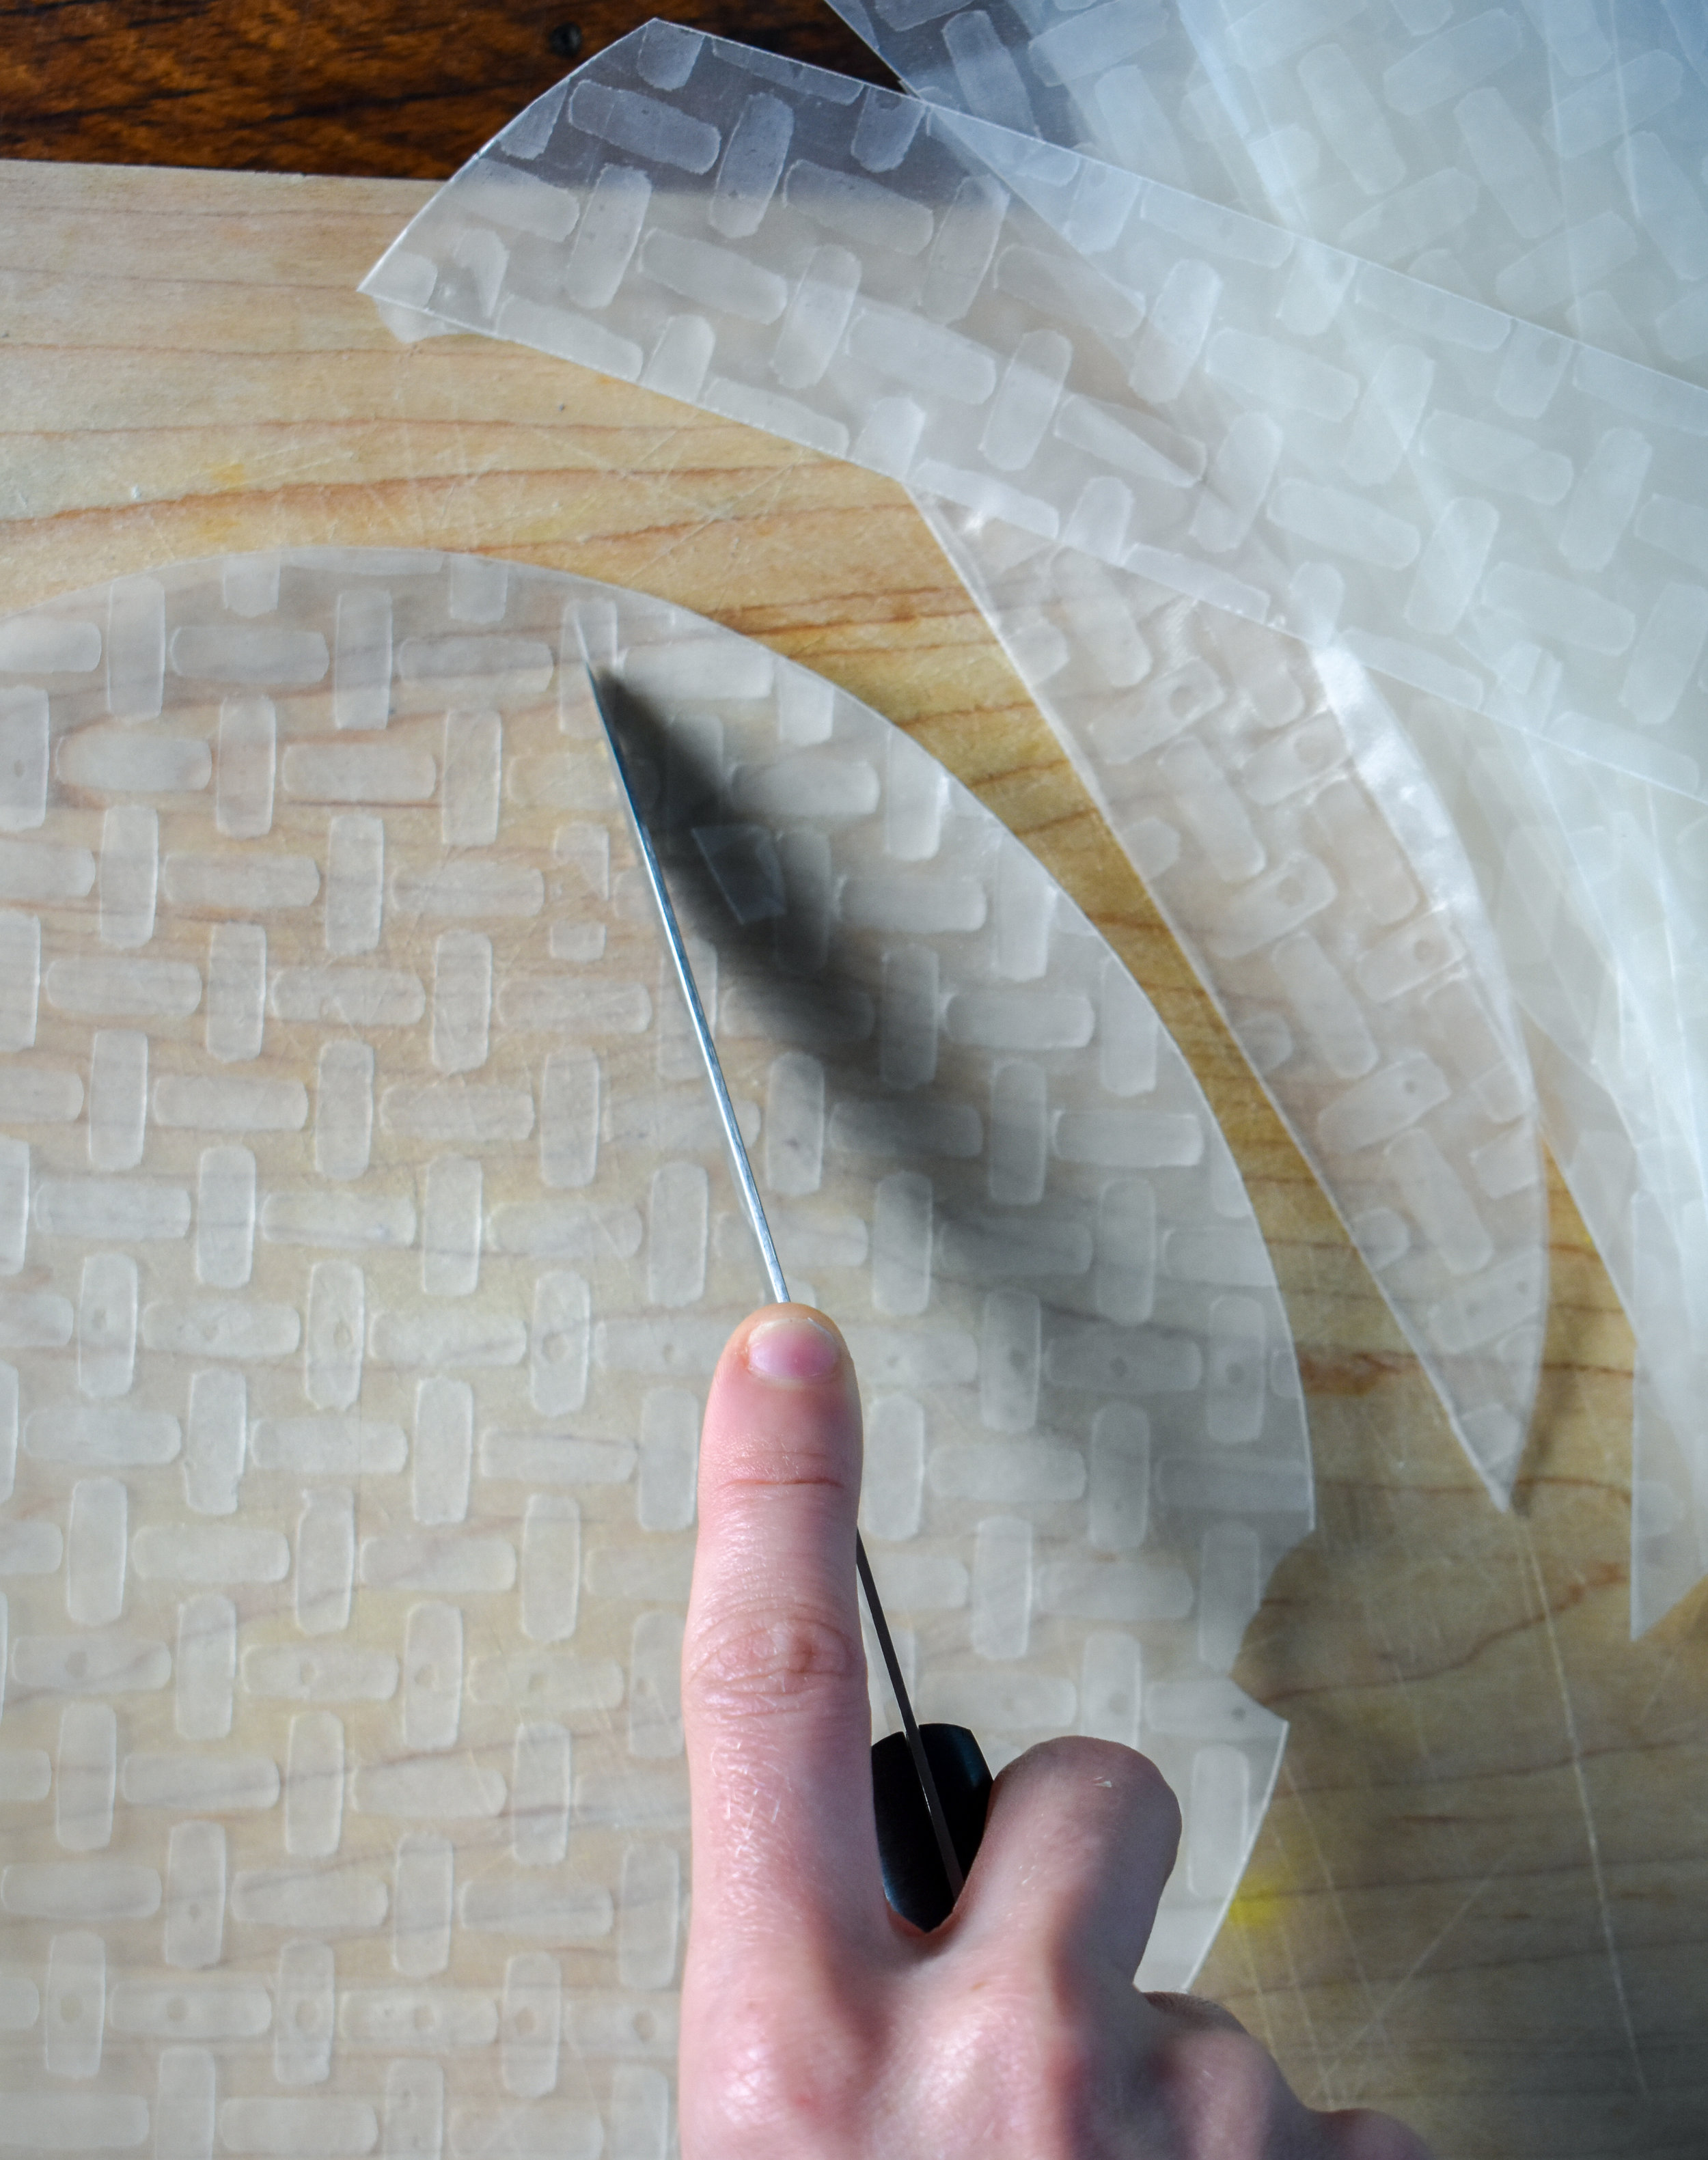 1. To start, using a sharp knife, cut 4-5 strips about 1.5-2 inches out of each piece of rice paper. You need to have roughly 35- 40 strips for 4 sandwiches.